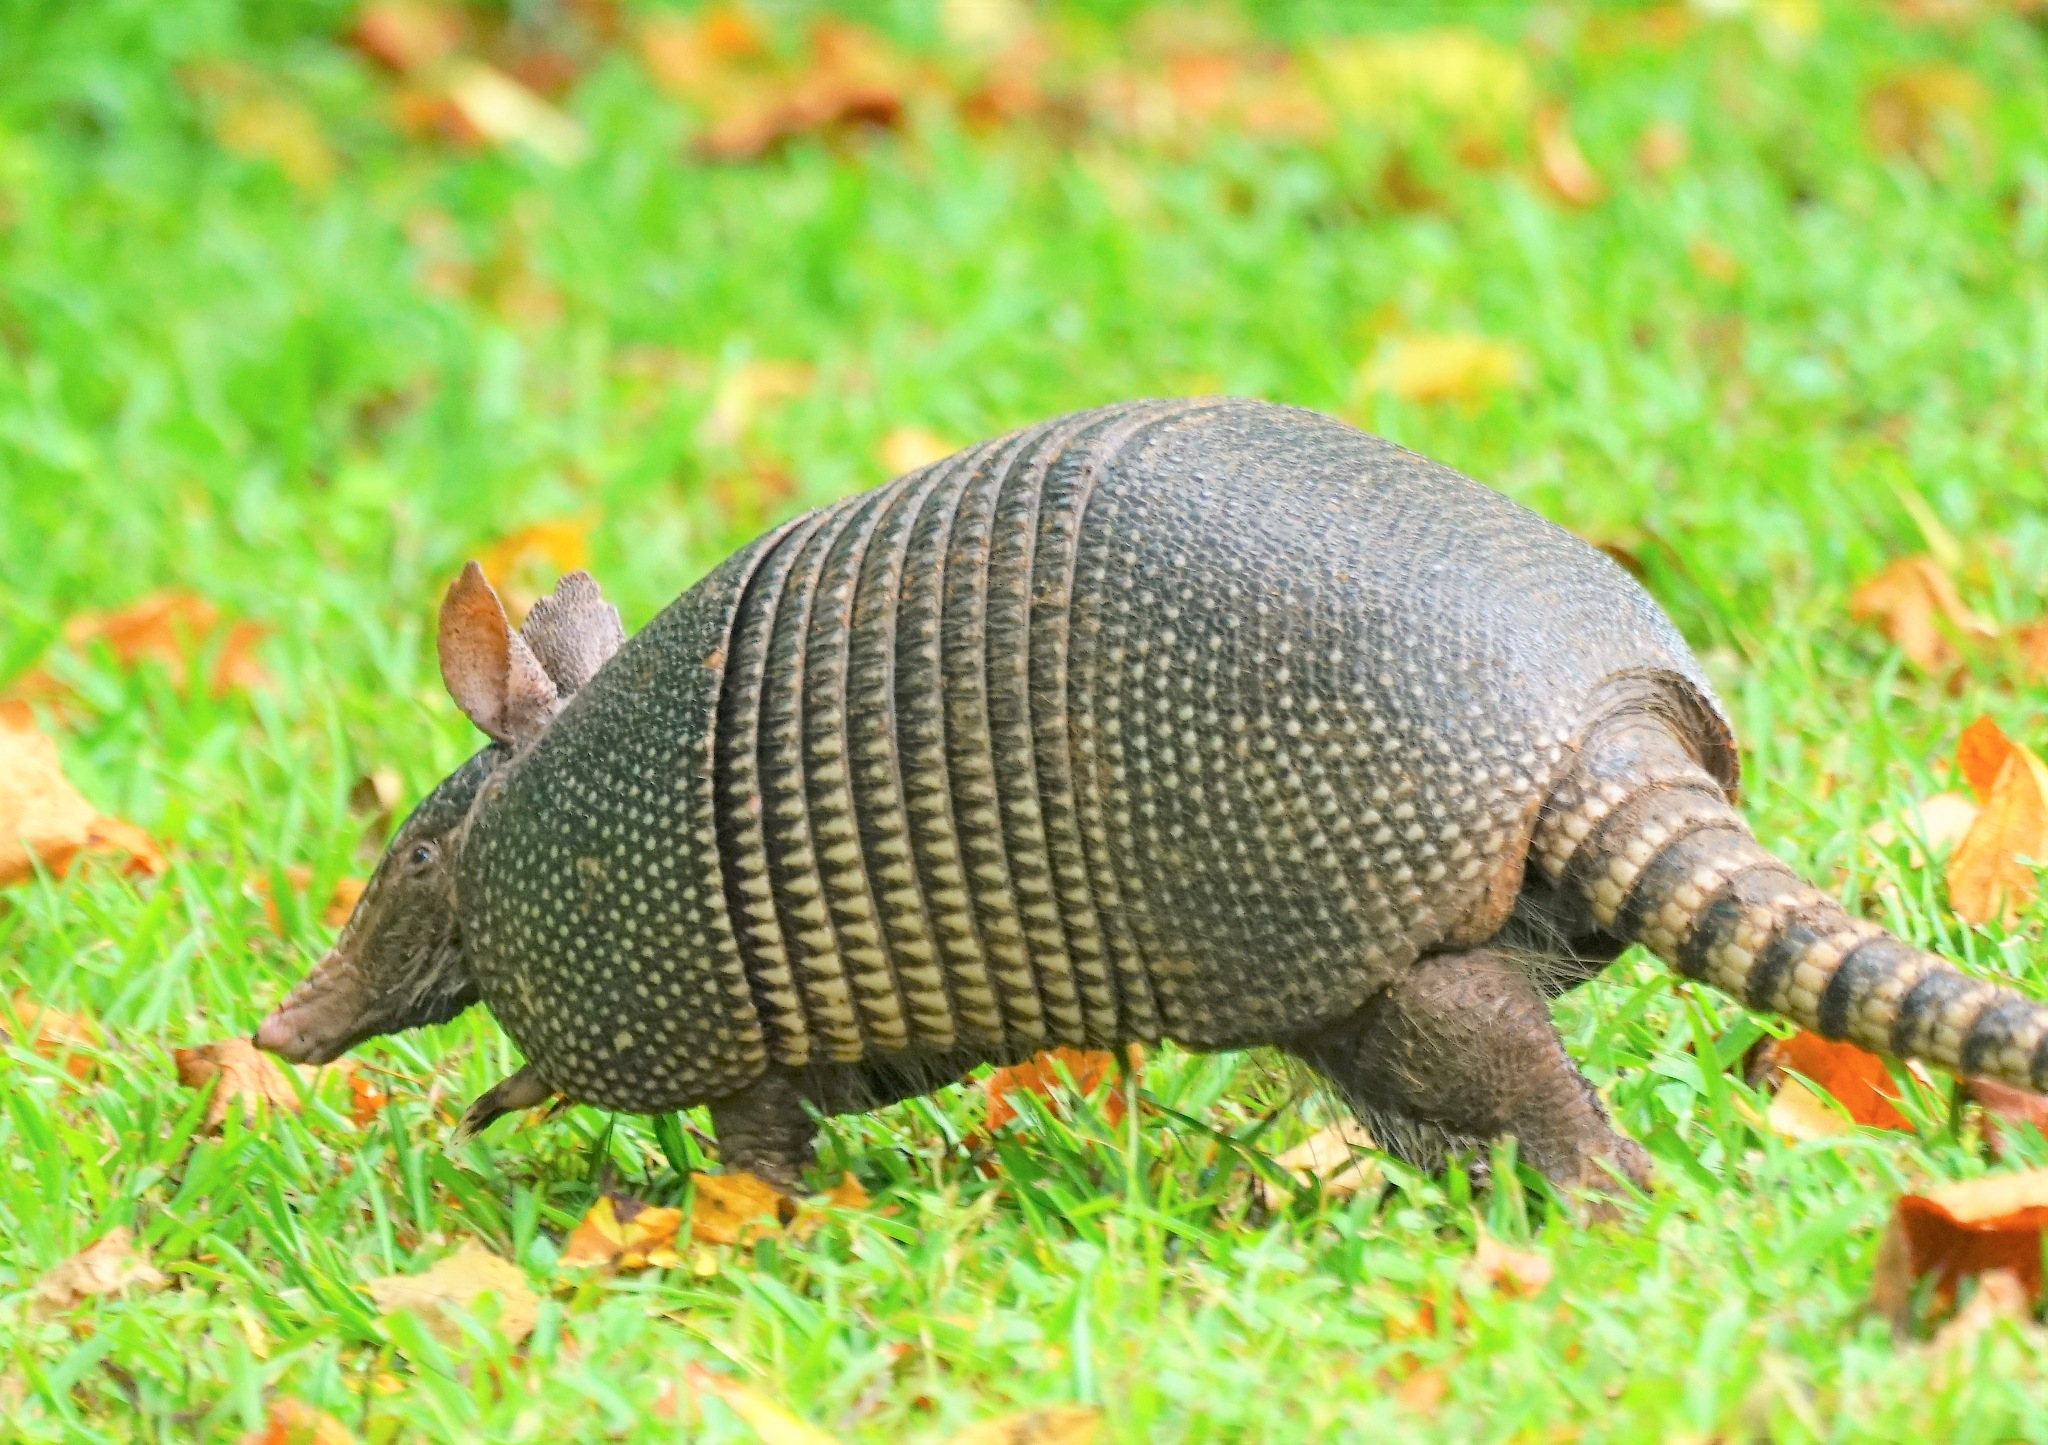 Nine-Banded Armadillo by MichaelDorsey